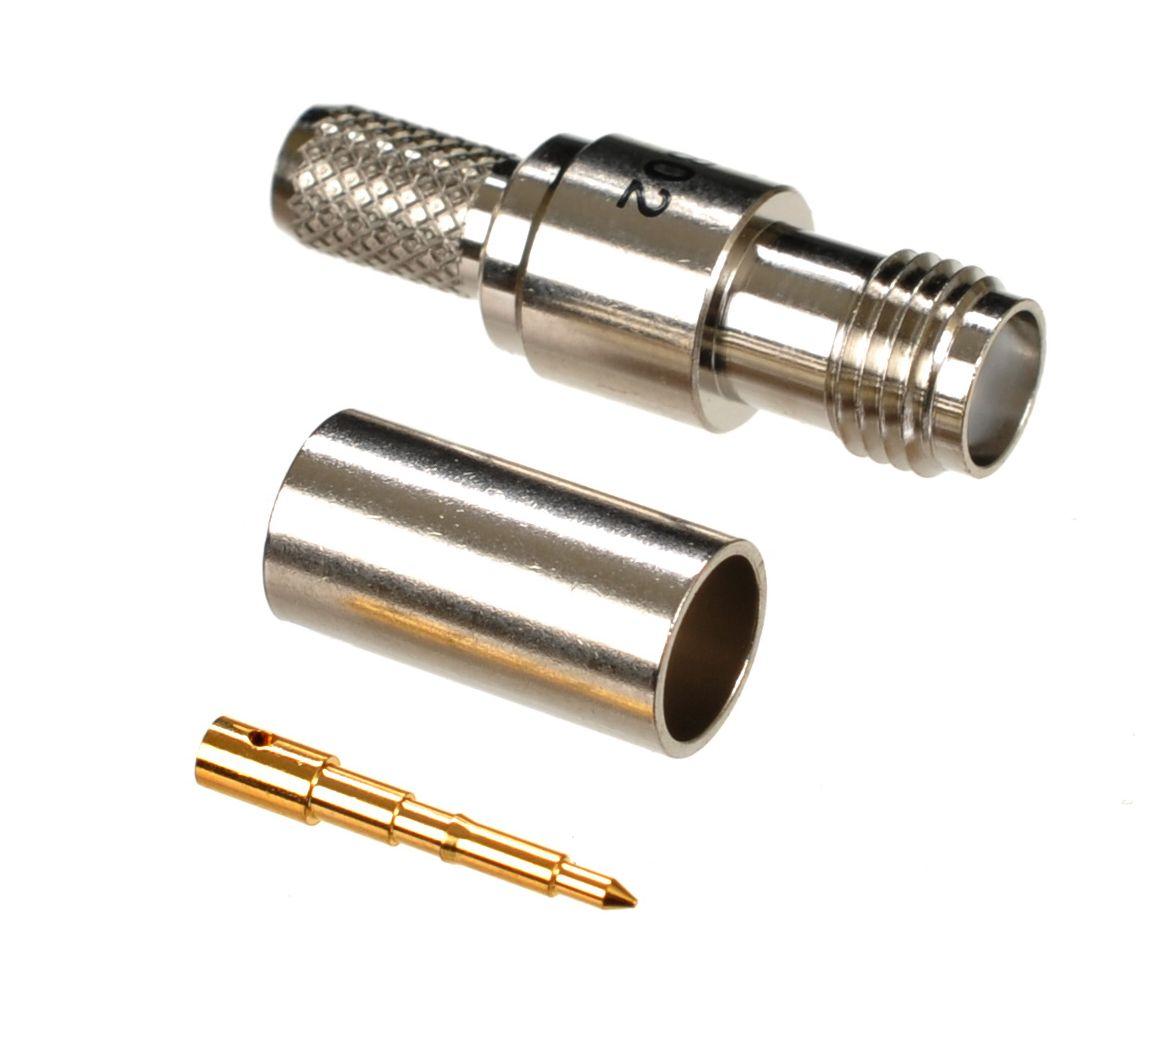 RP-SMA jack-female connector for AIR802 CA195, Times Microwave LMR195, RG58 and similar sized coaxial cables.